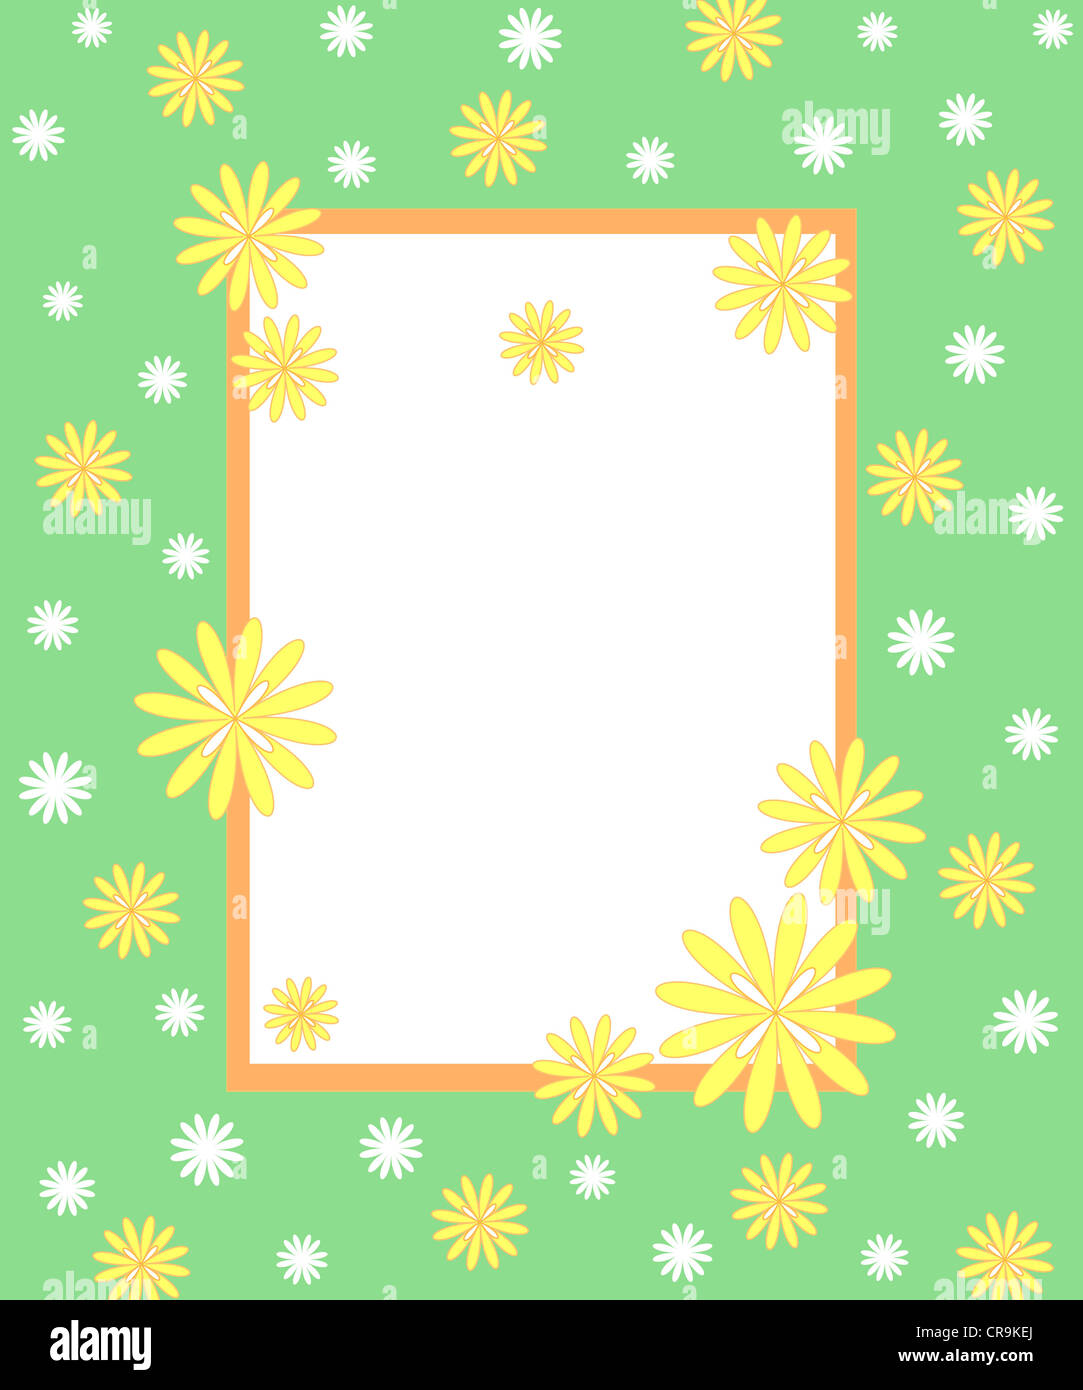 Floral pattern with green frame Stock Photo